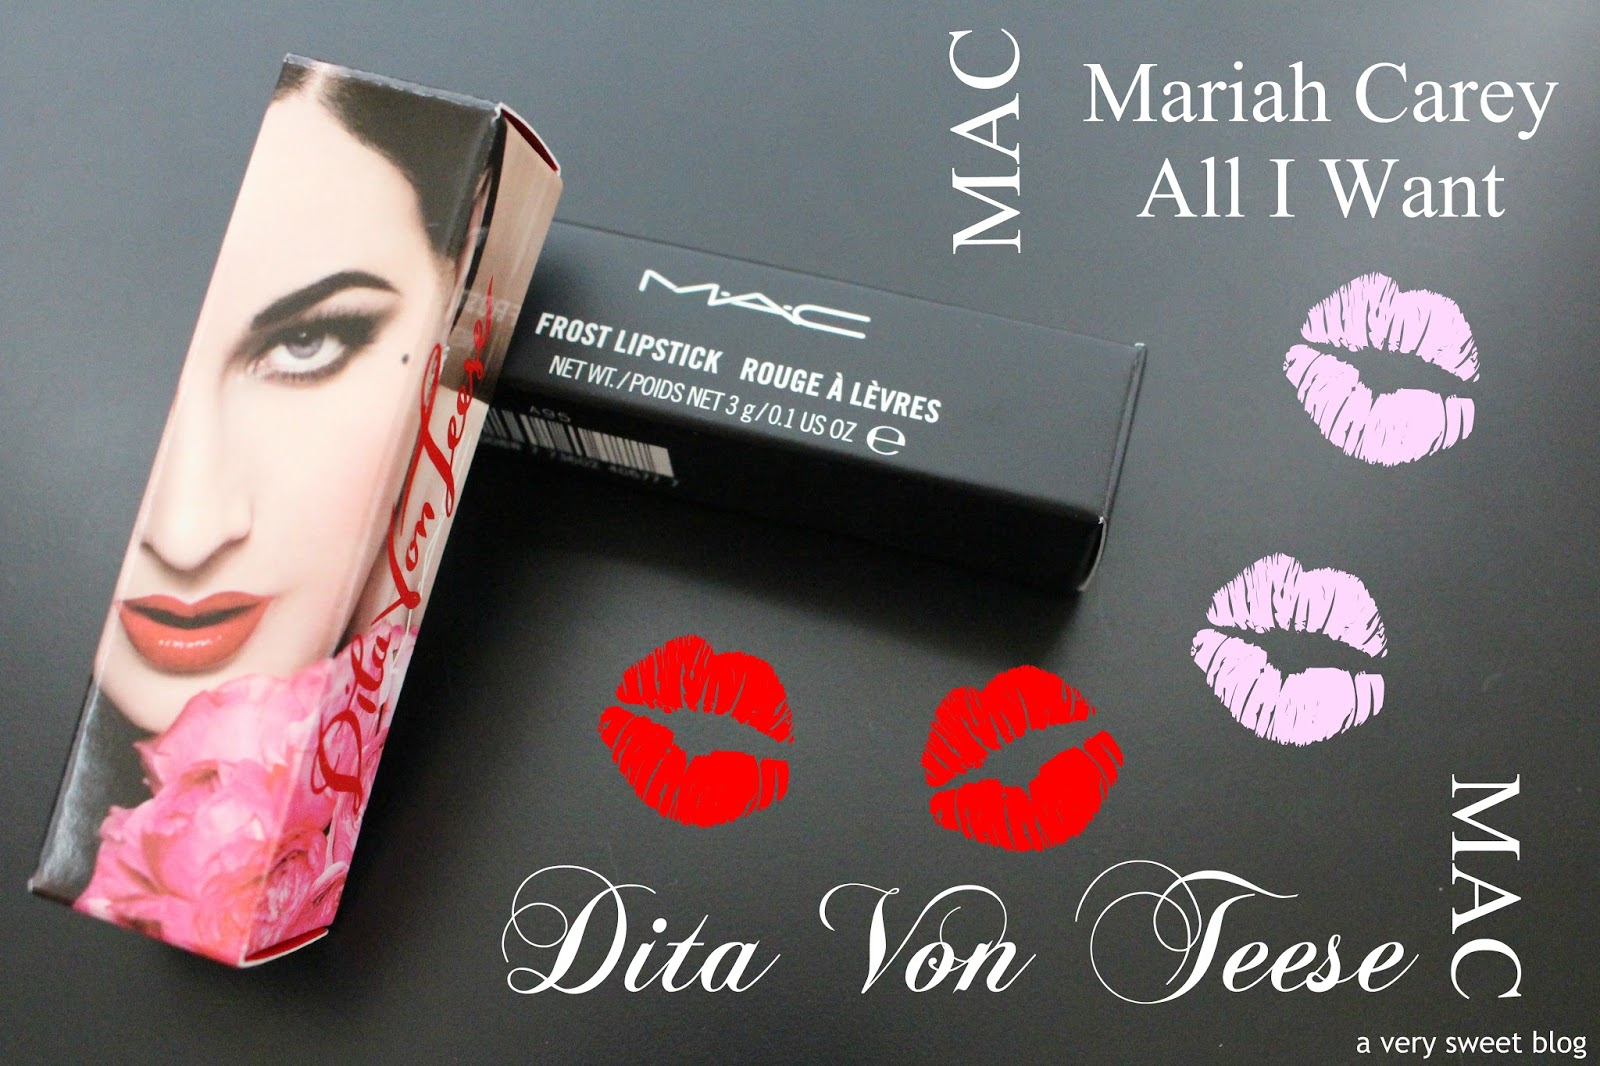 136d6ad76a9f MAC Mariah Carey All I Want and Dita Von Teese Lipstick Review ...